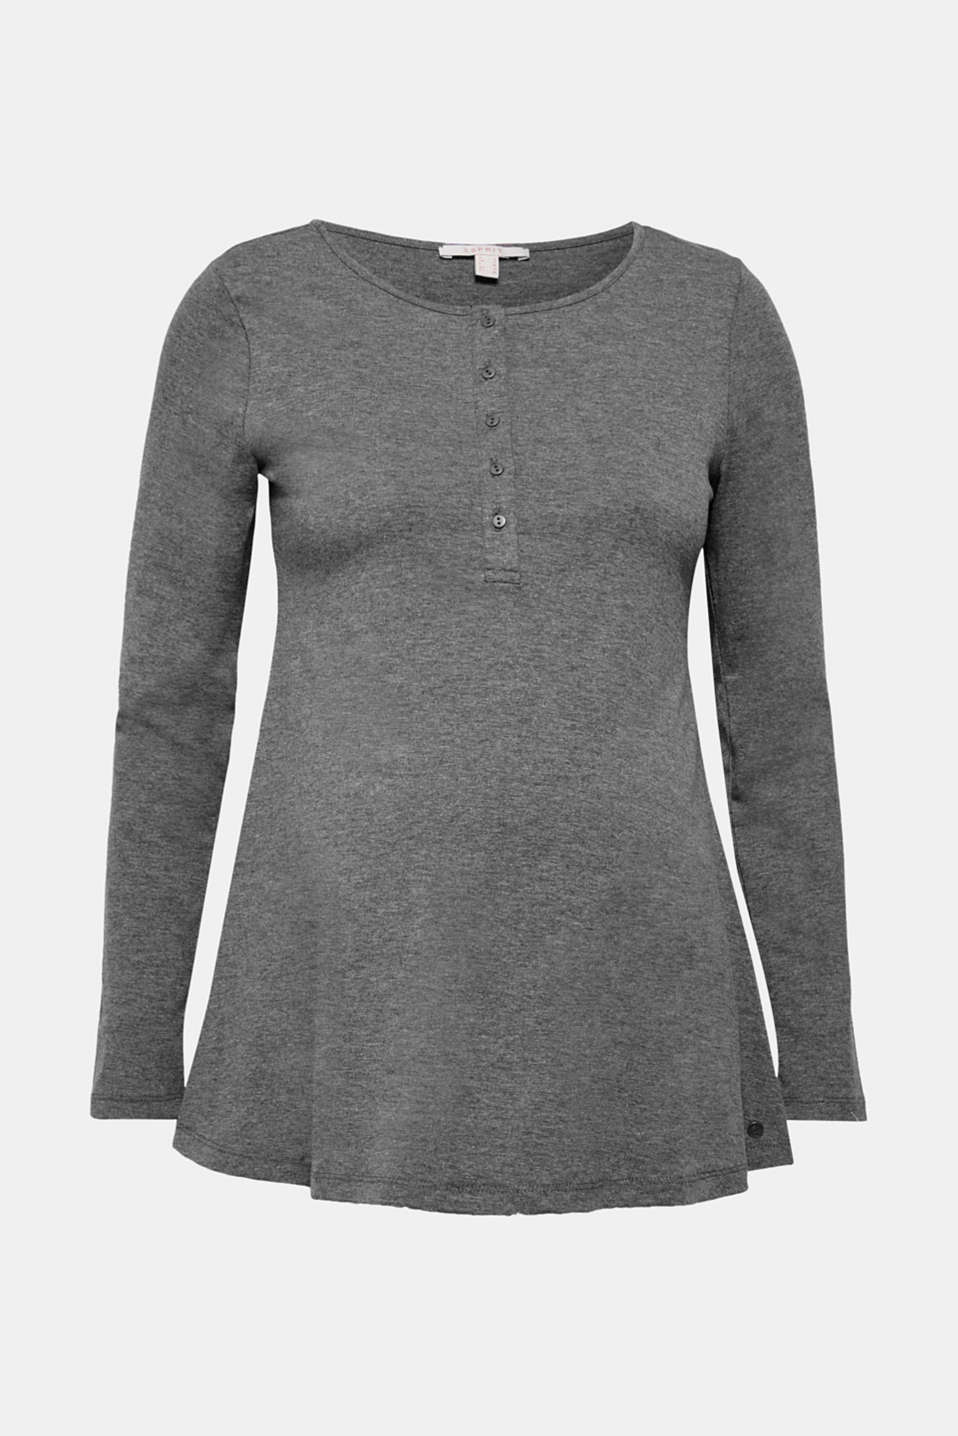 This fashionably flared, A-line long sleeve top featuring a long button placket and comfy nursing options is simple and trendy!